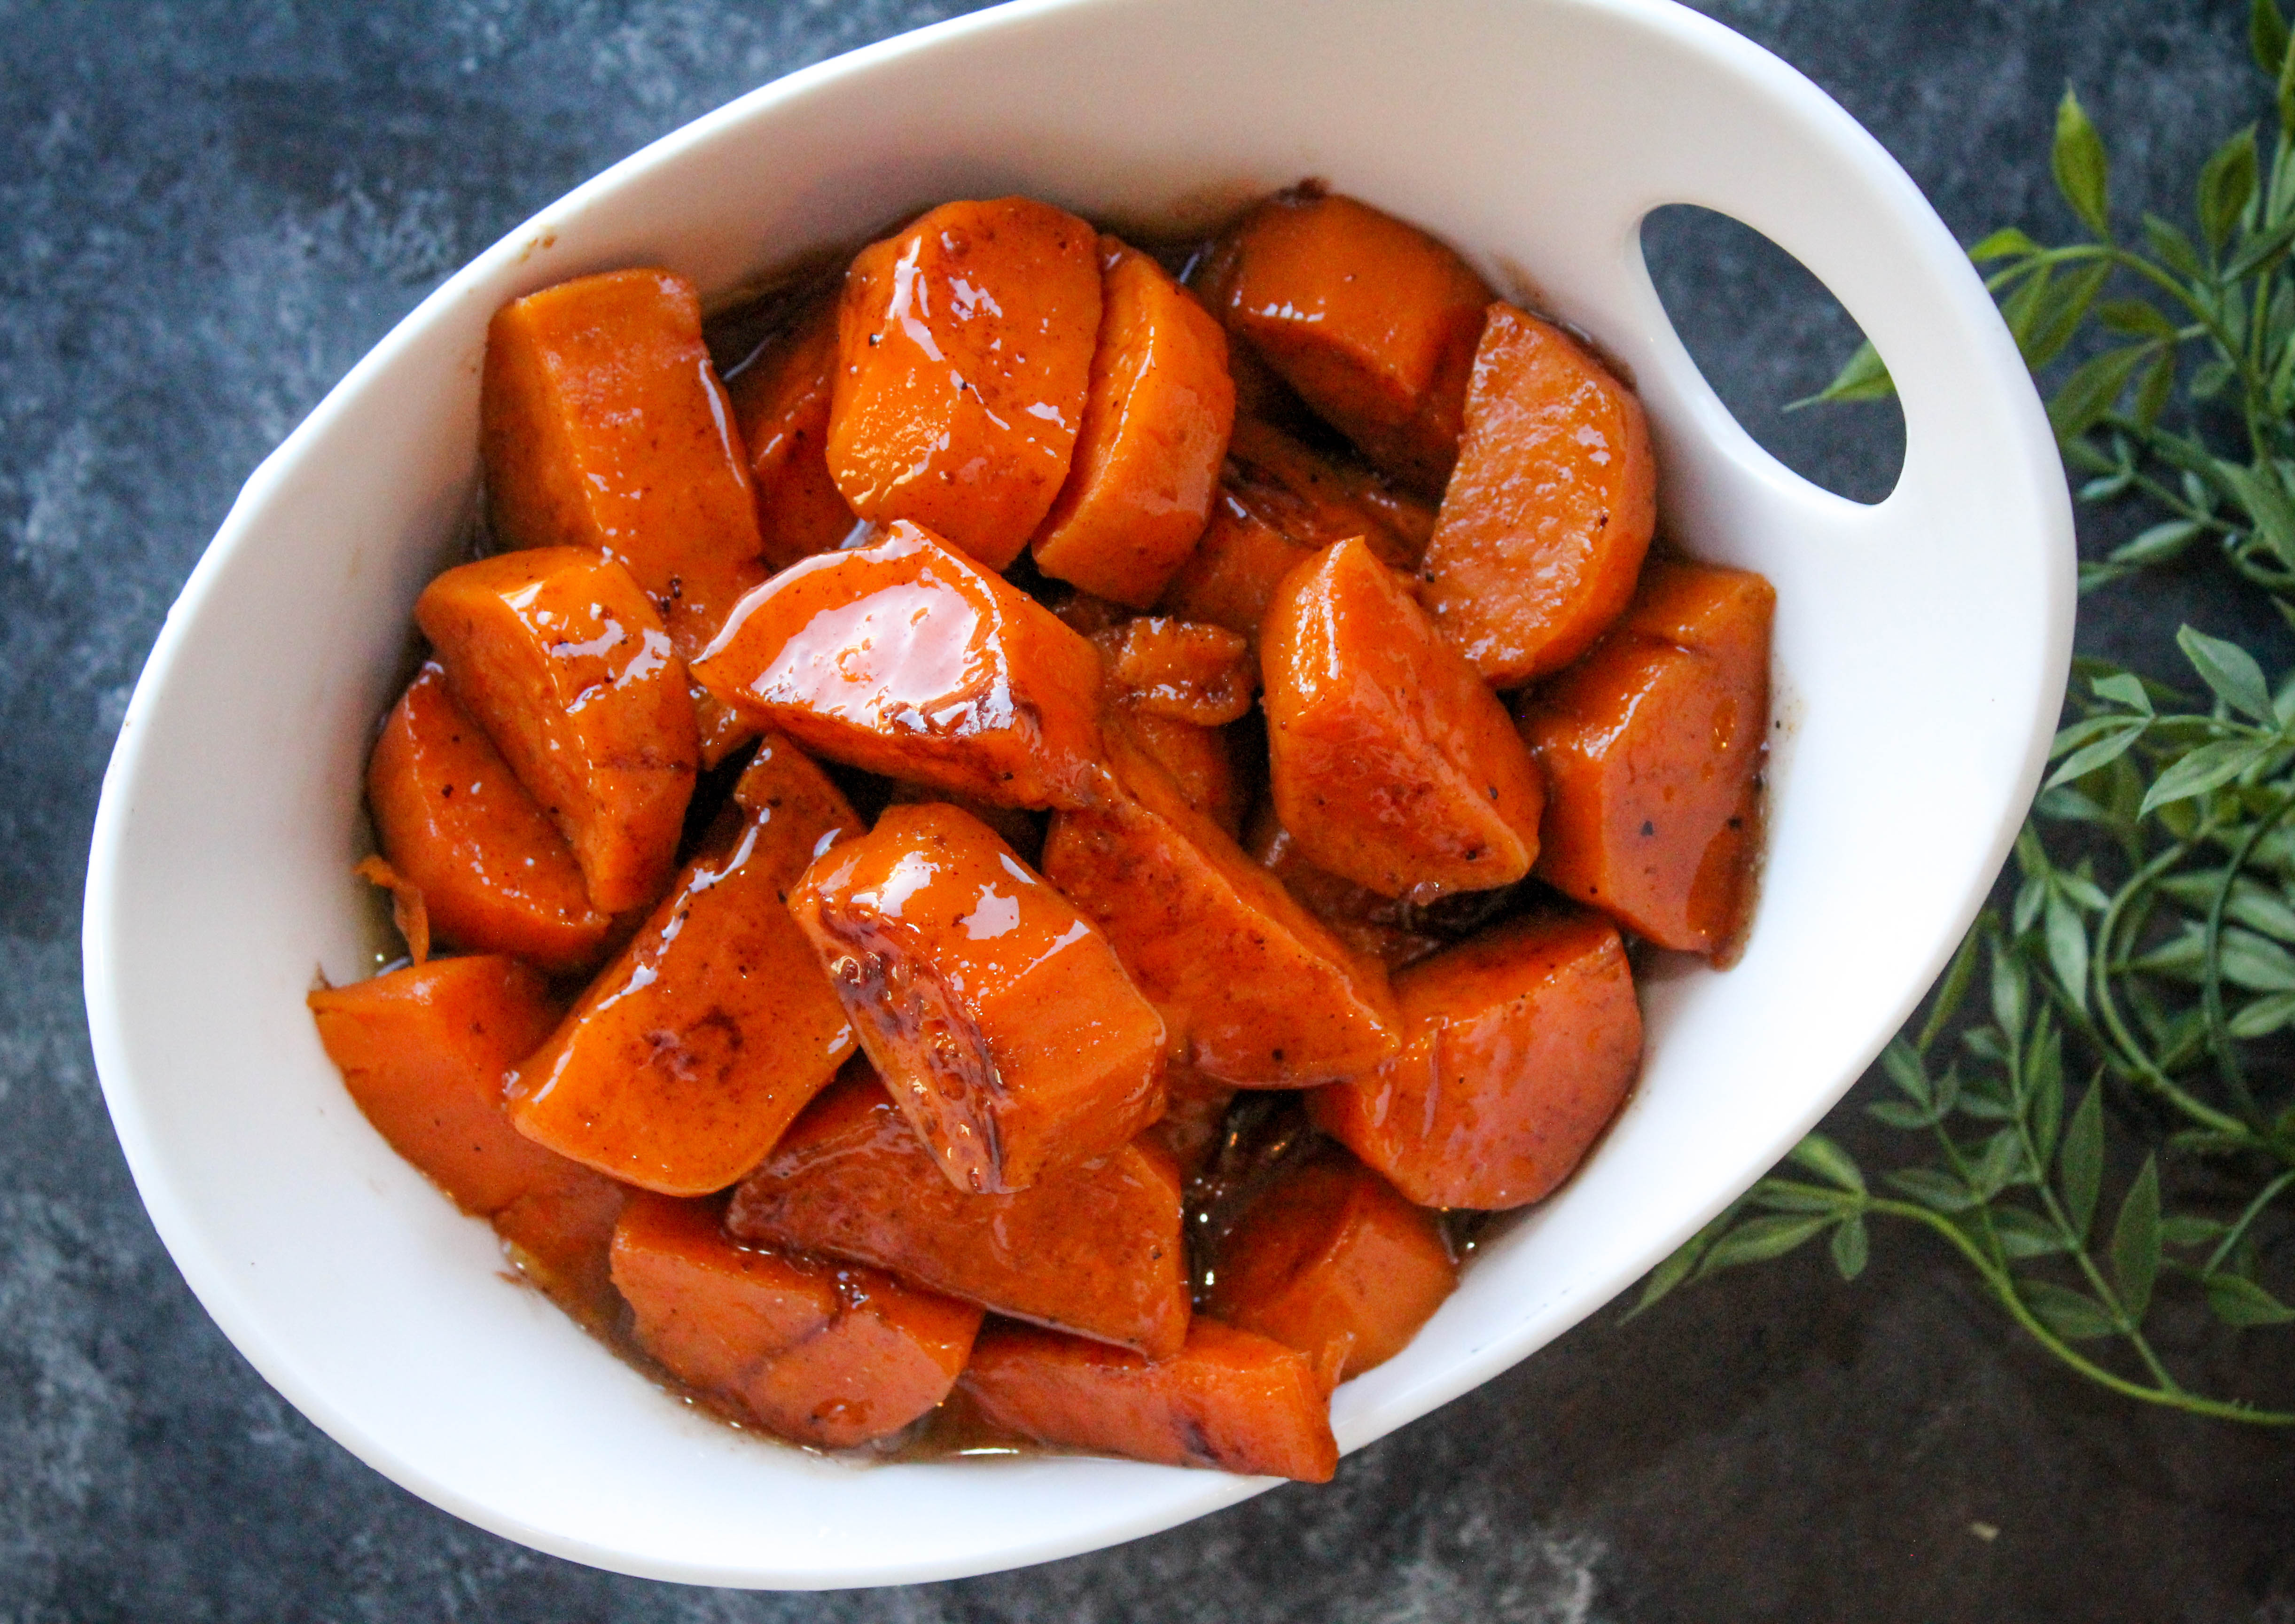 Miss Robbie's Candied Yams